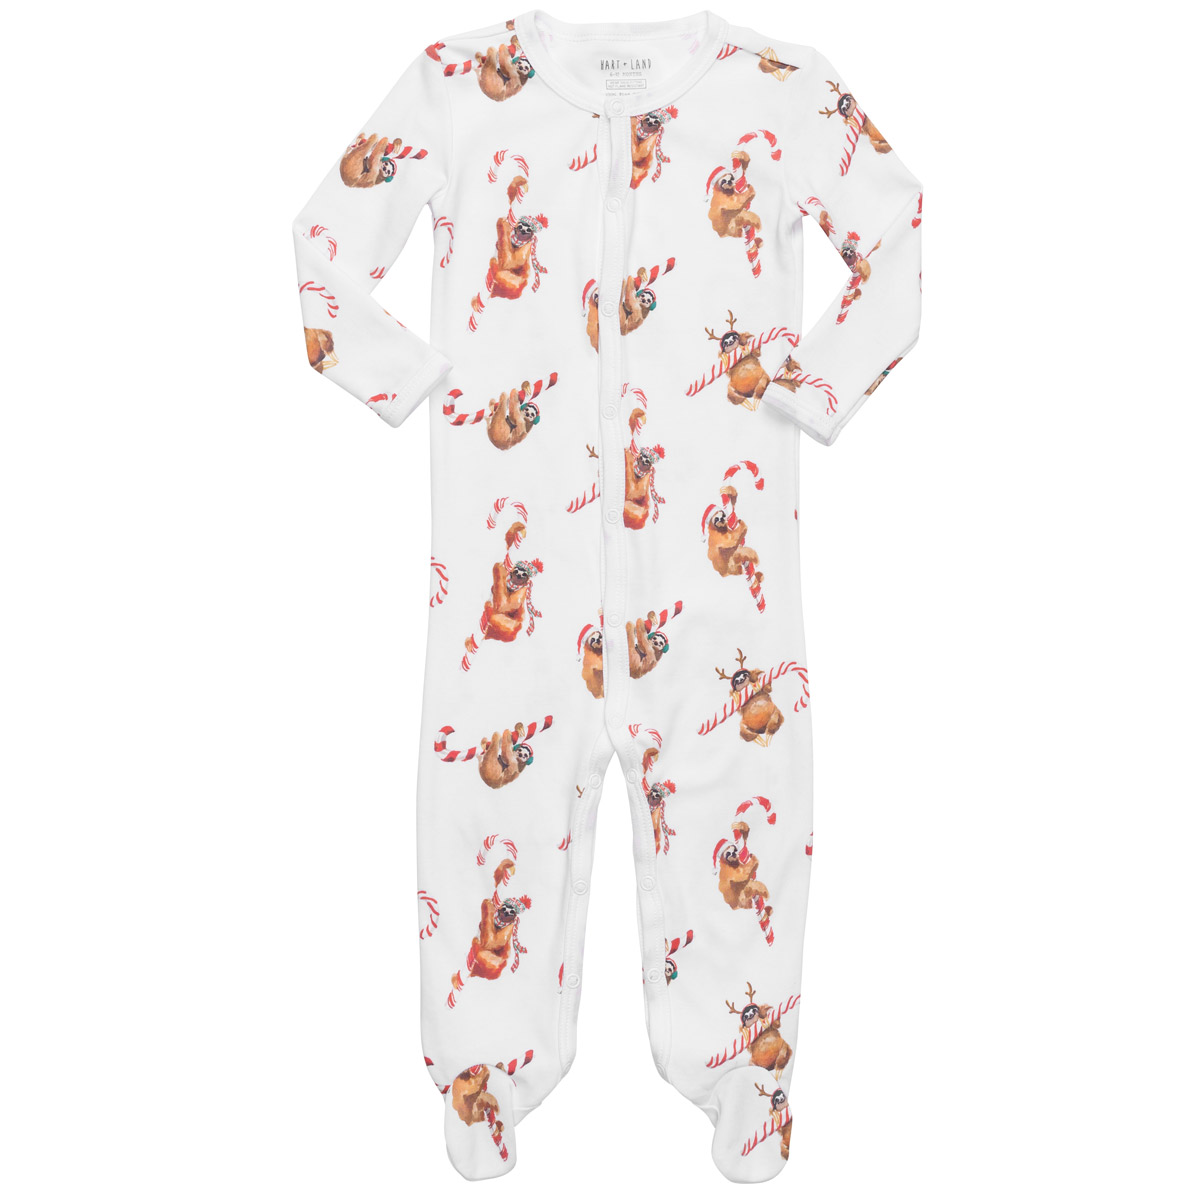 HART + LAND Holiday Sloths Footed Pajamas